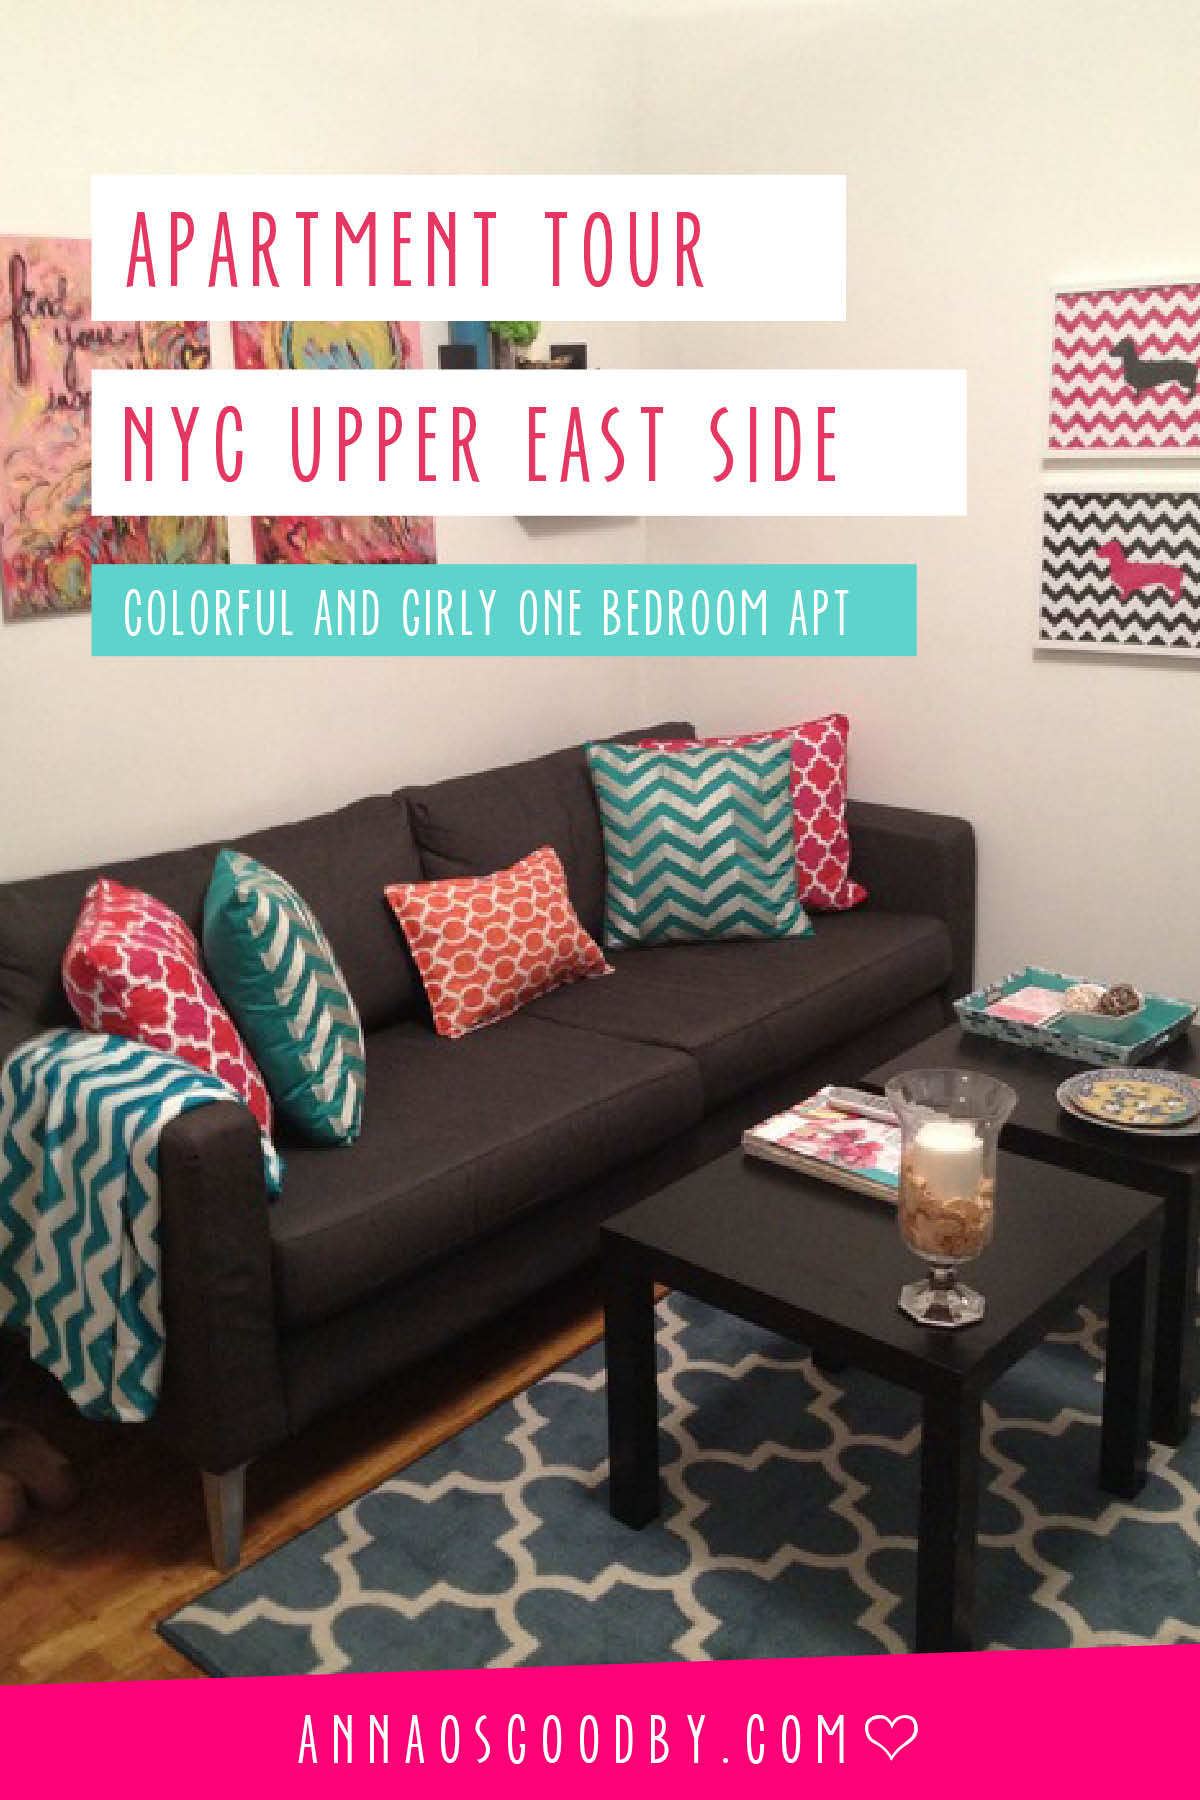 Anna Osgoodby Life + Design :: NYC Apartment Tour Upper East Side Colorful One Bedroom